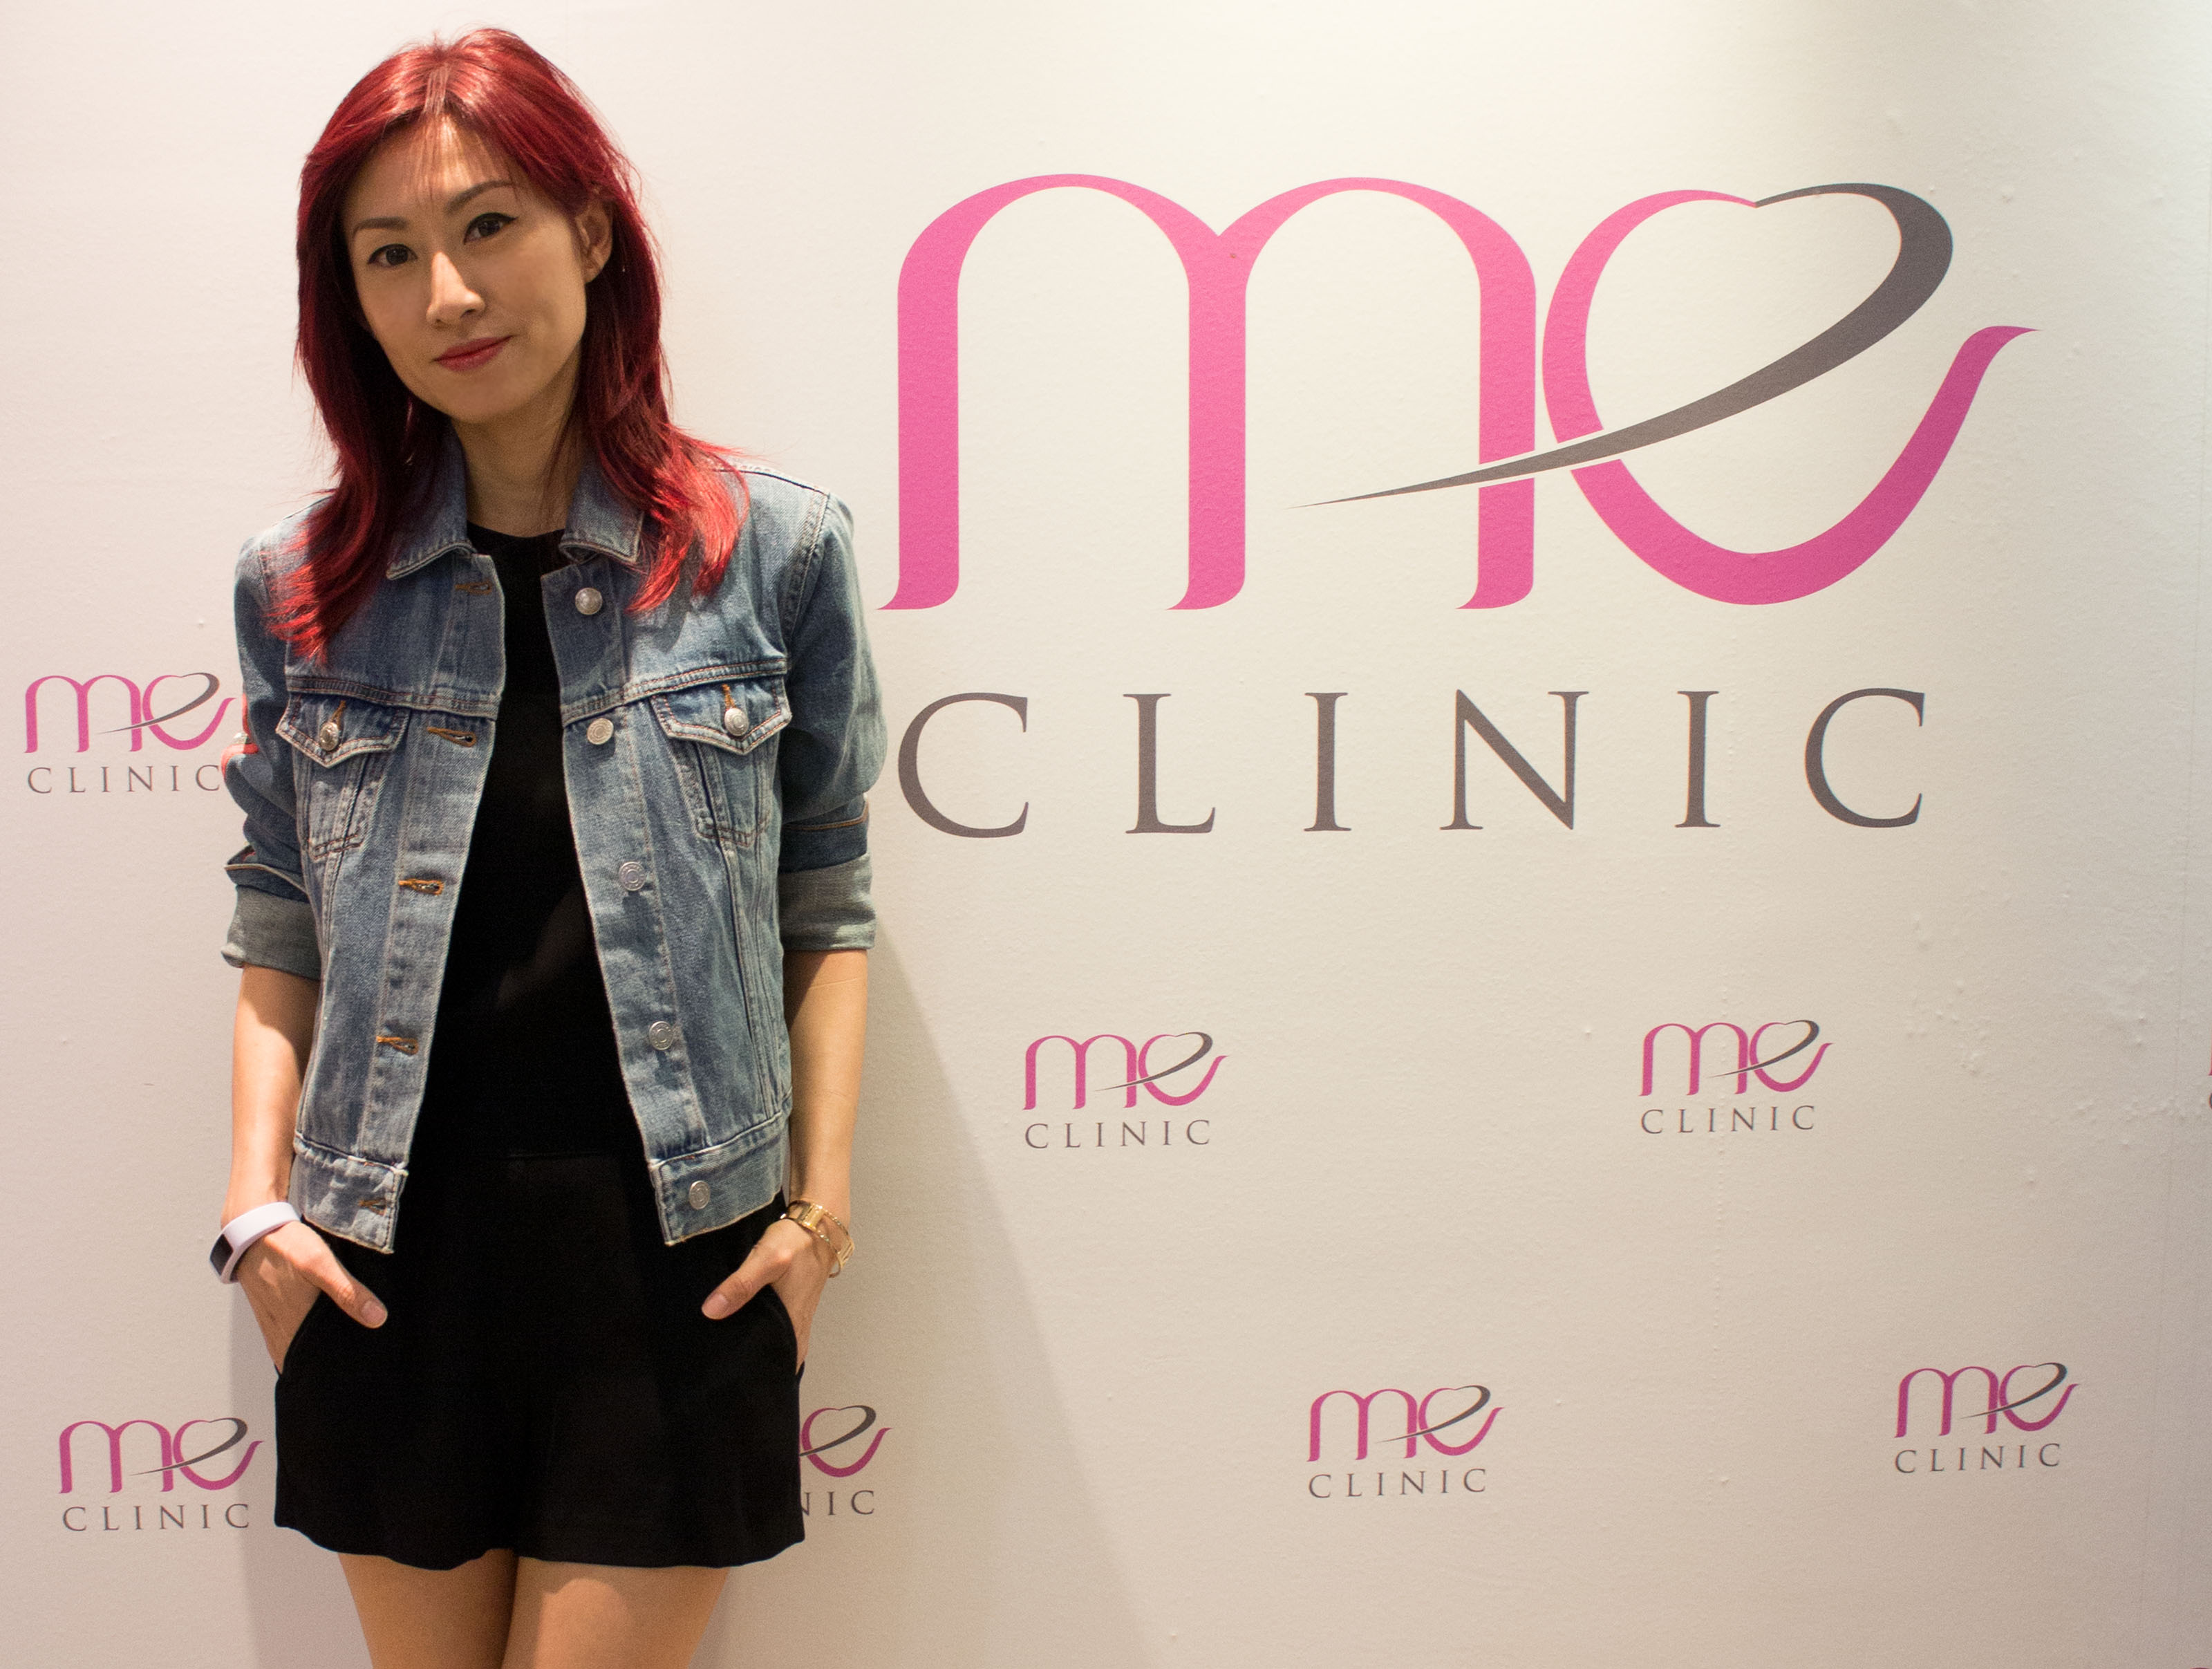 Me Aesthetic Clinic And Laser Treatments